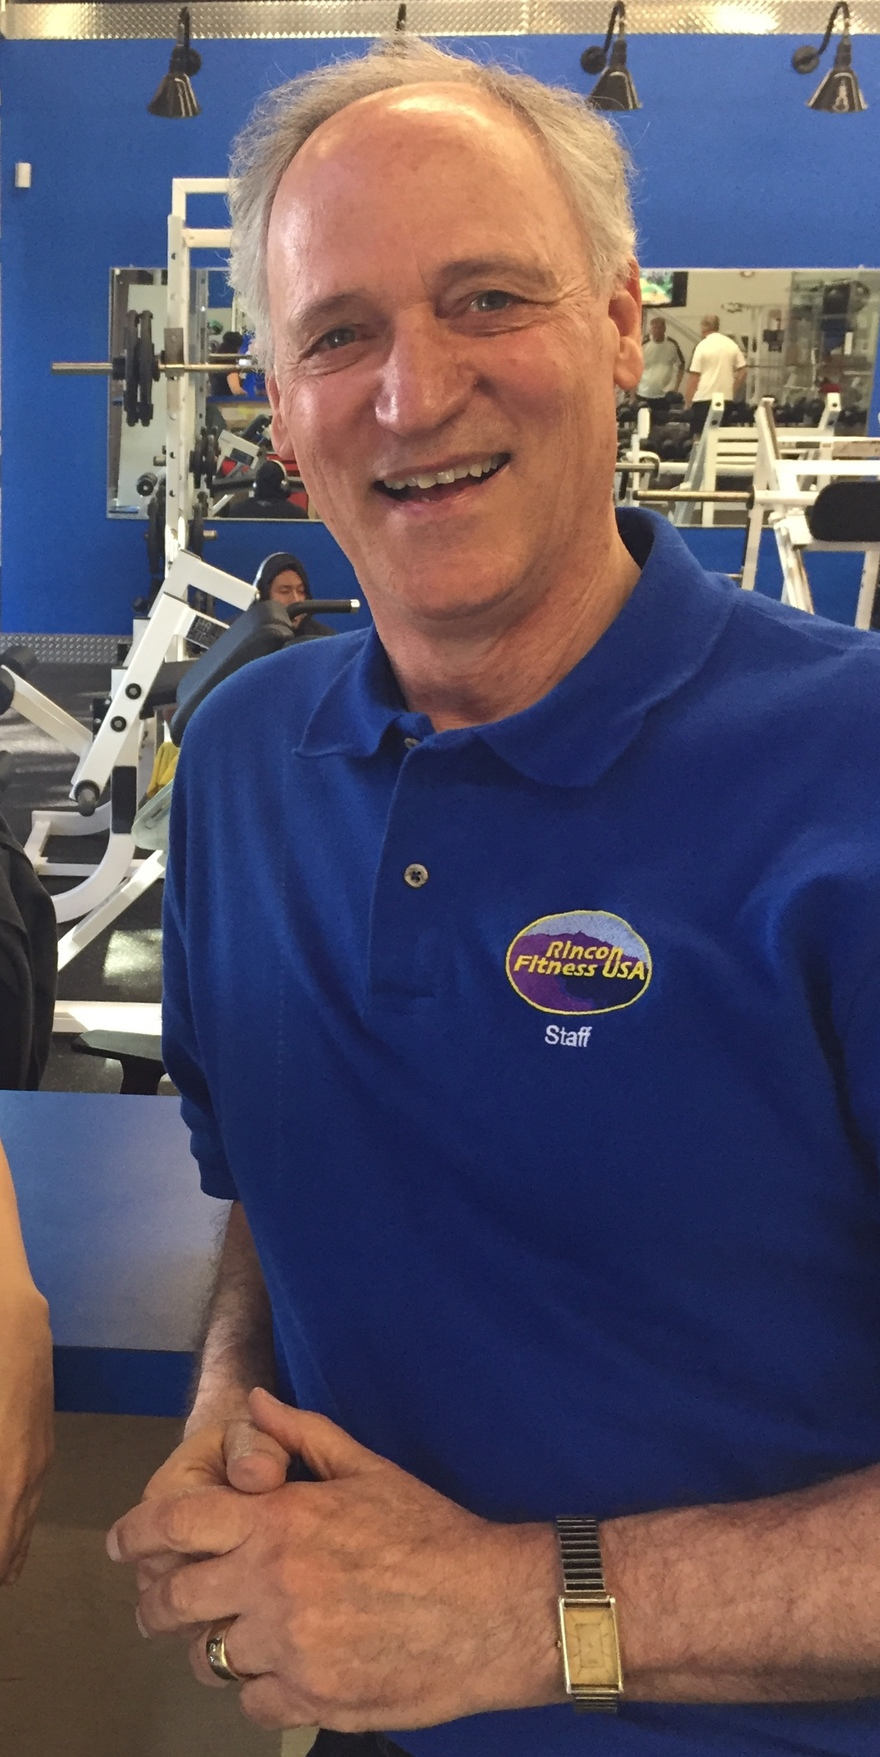 Kevin Twohy Carpinteria Fitness Gym Owner